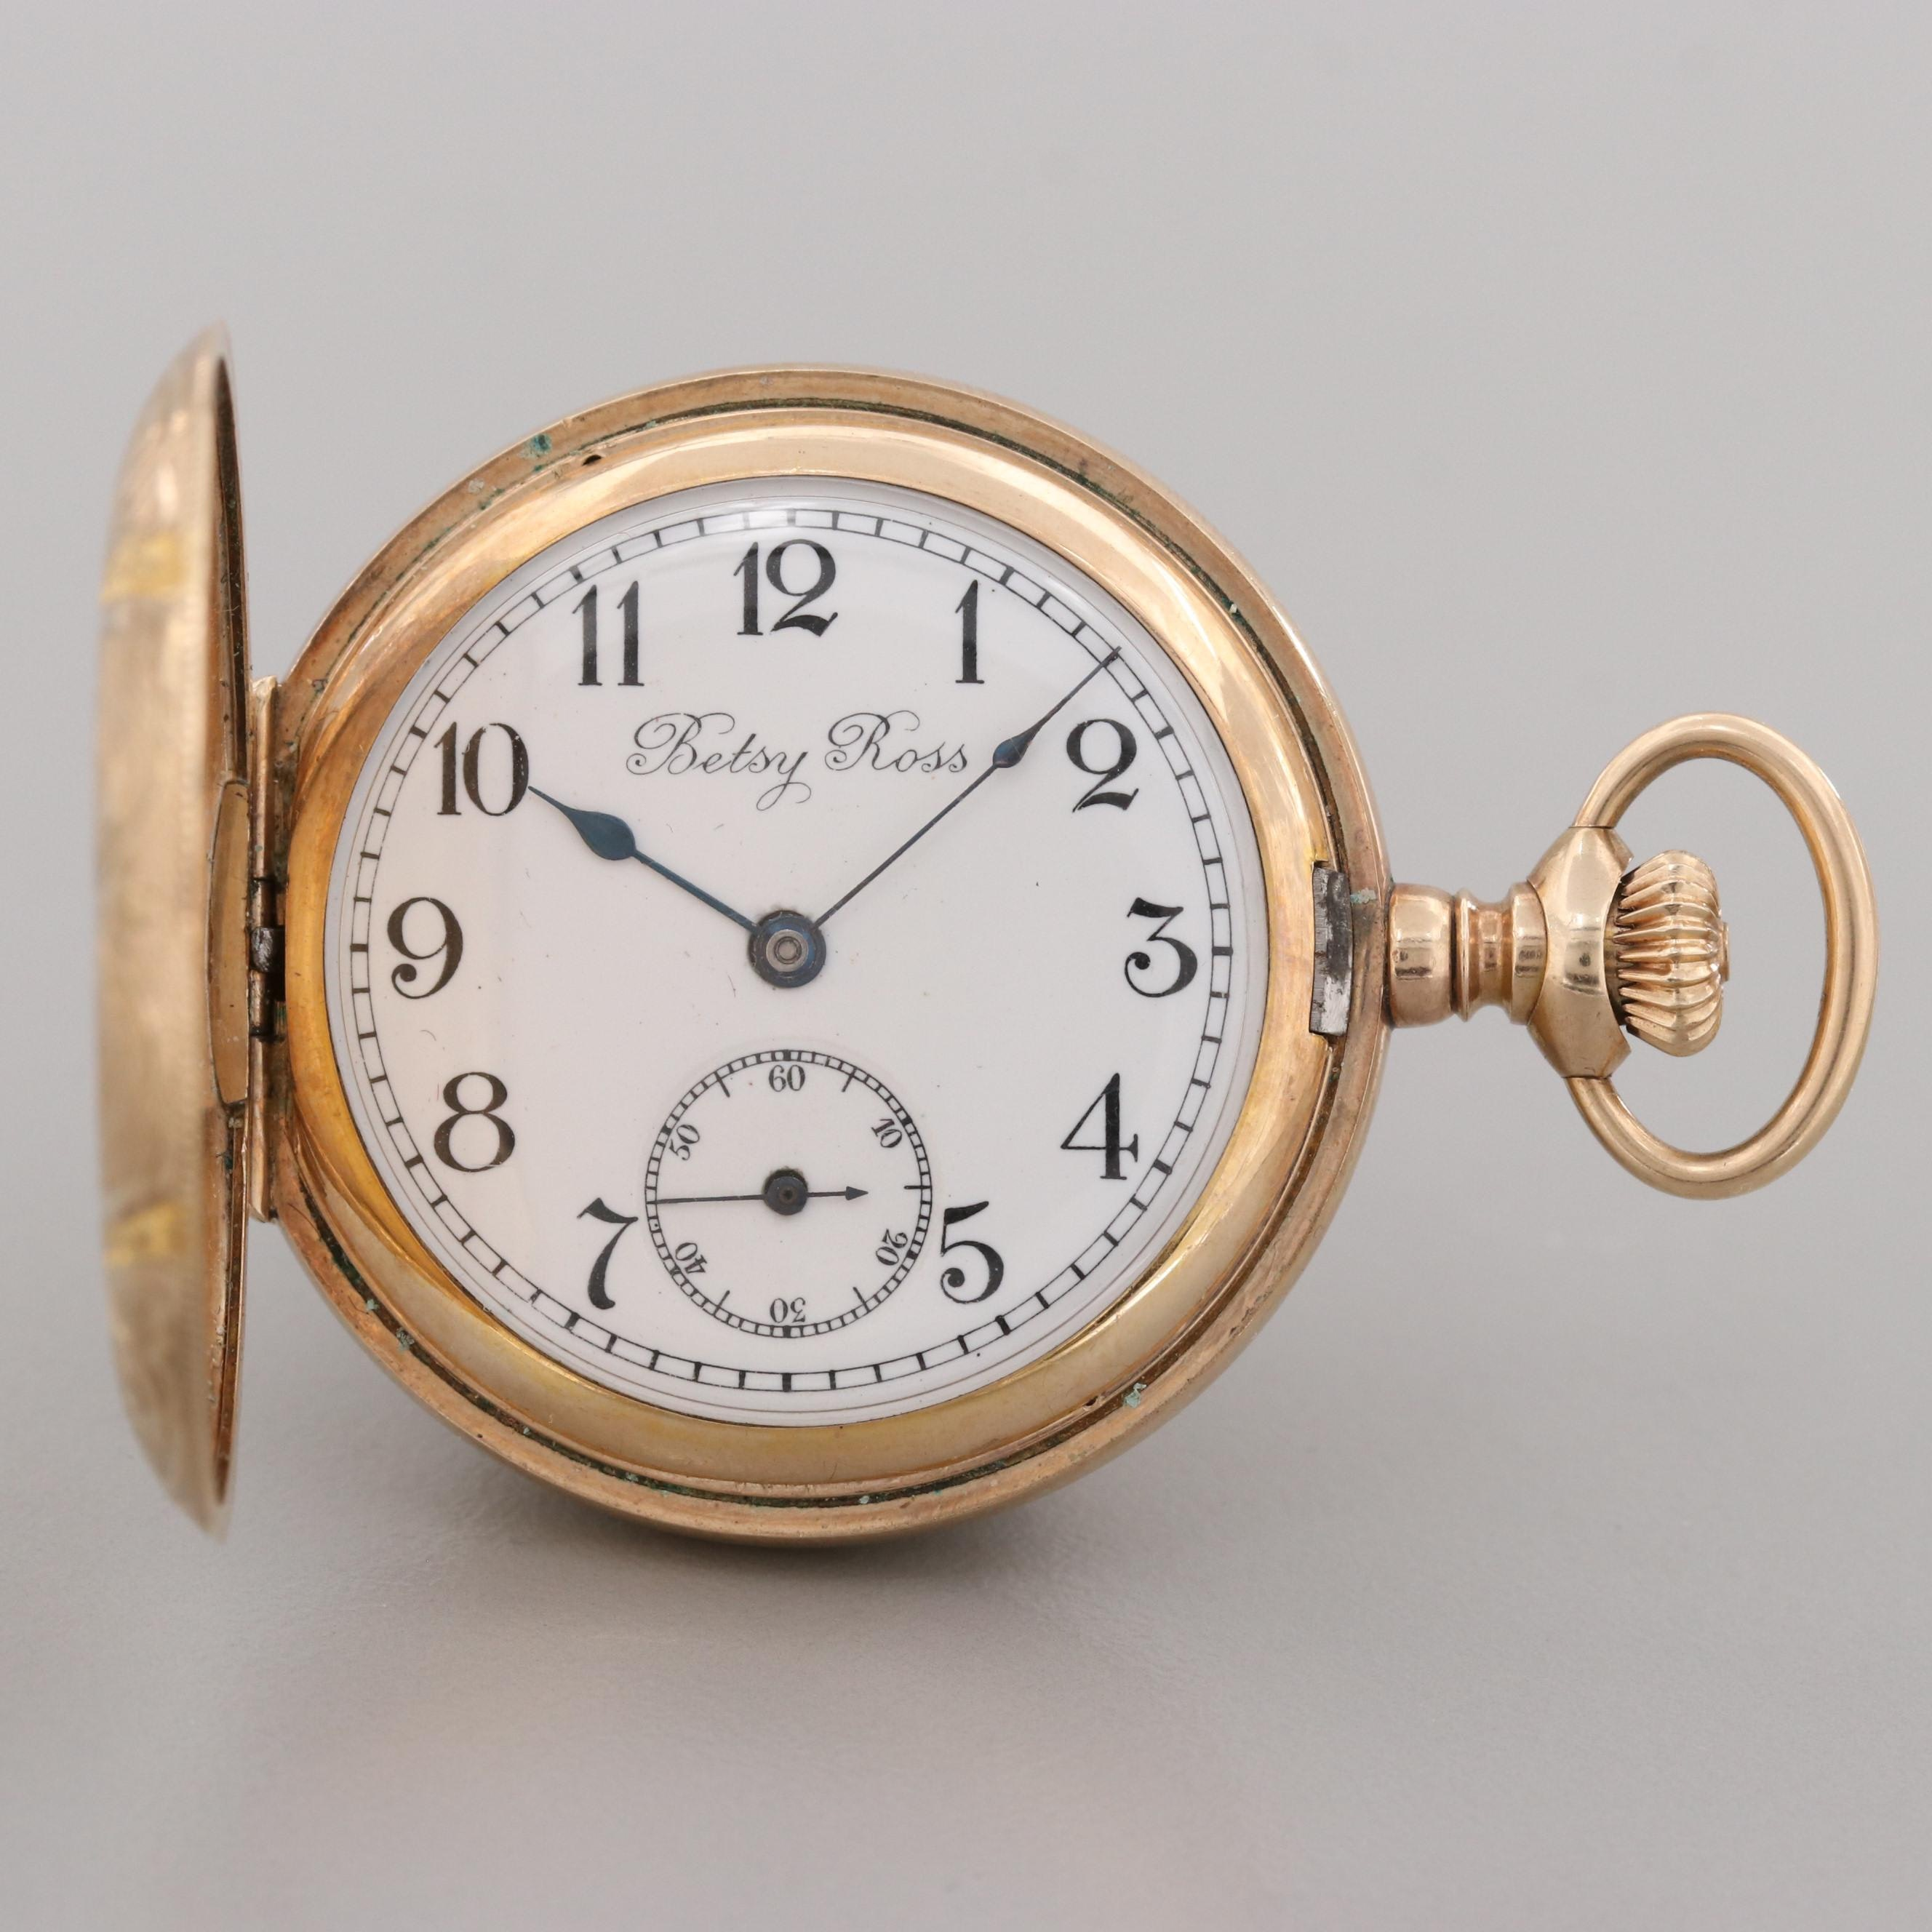 Betsy Ross U.S. Watch Co. of Waltham Gold Filled Pocket Watch